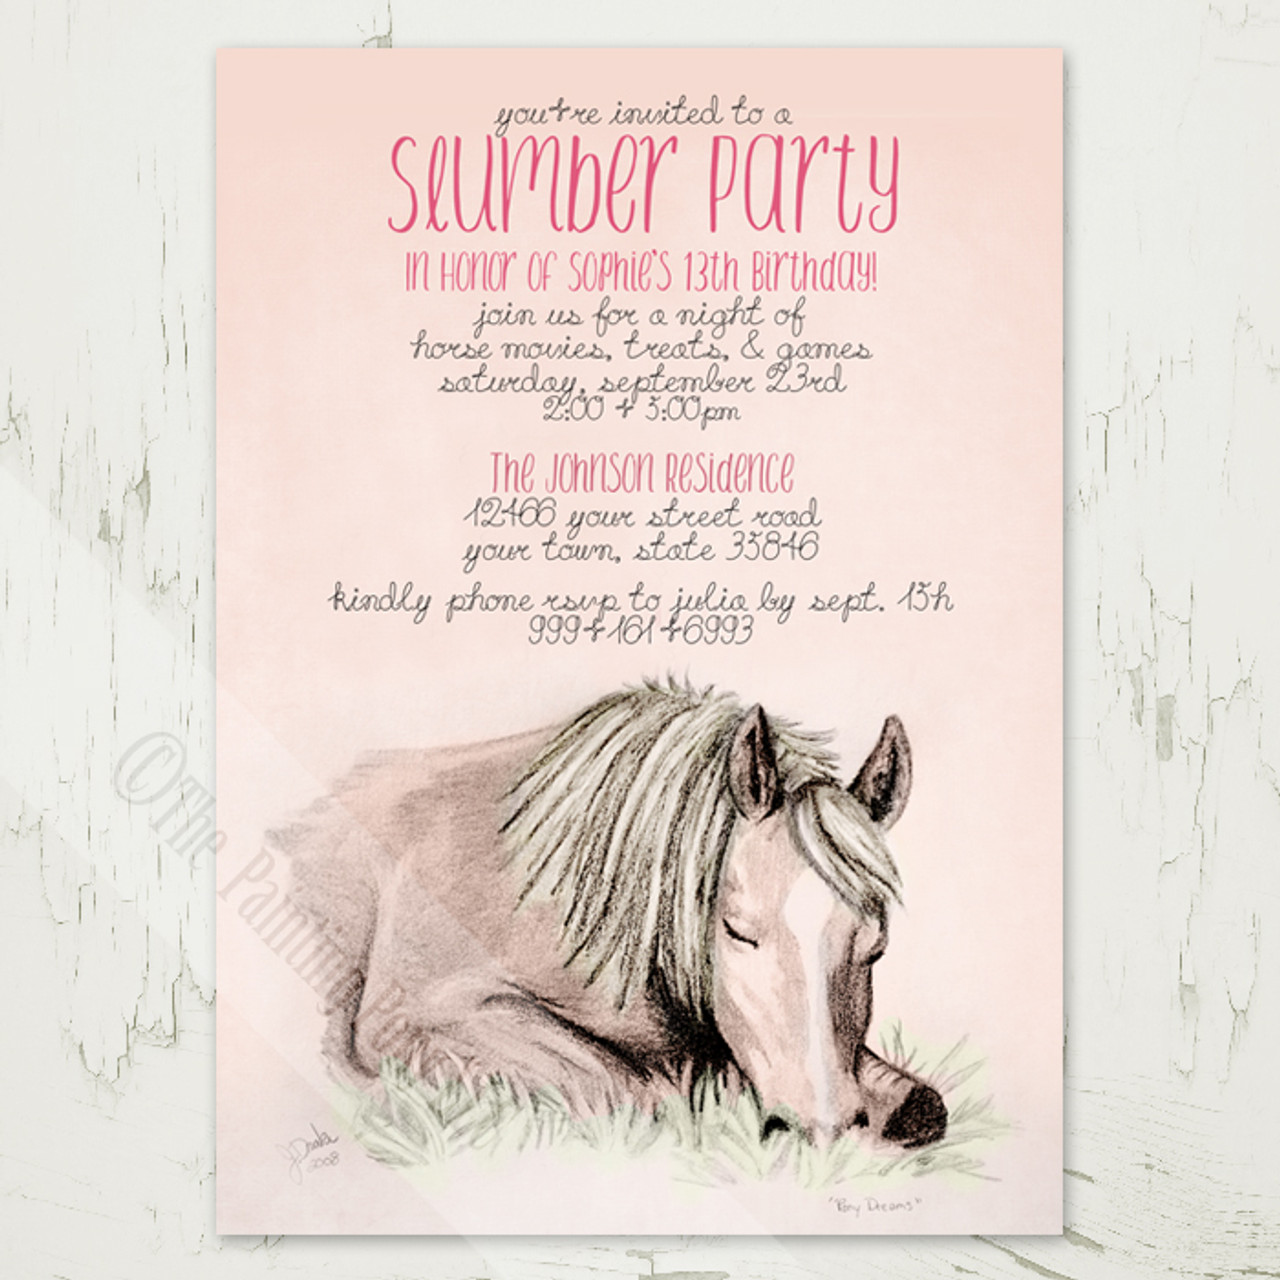 Pony dreams slumber party birthday invitation 10 pk the painting girls 13th birthday slumber party invitations with a horse or pony theme filmwisefo